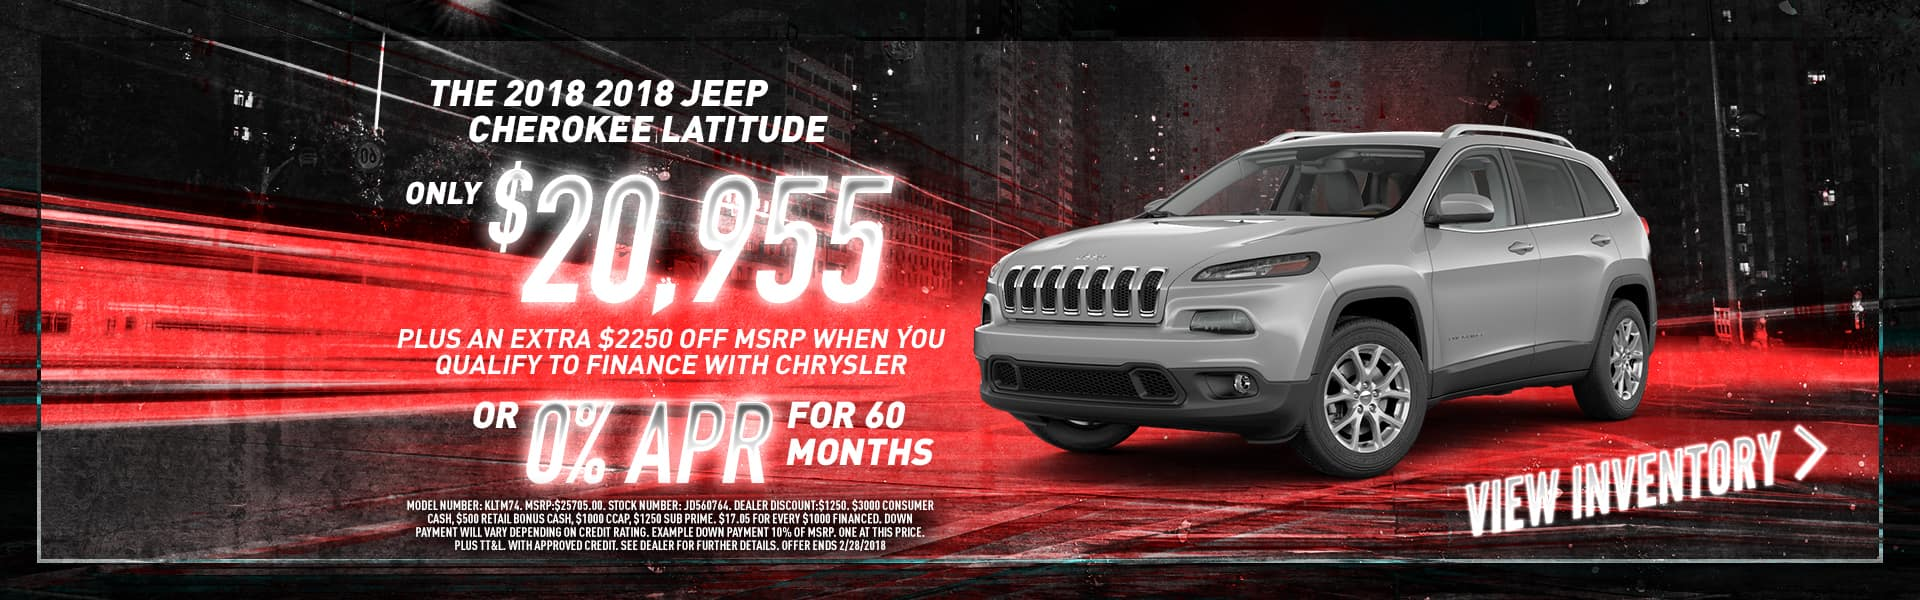 beaumont-2018-jeep-cherokee-latitude-for-sale